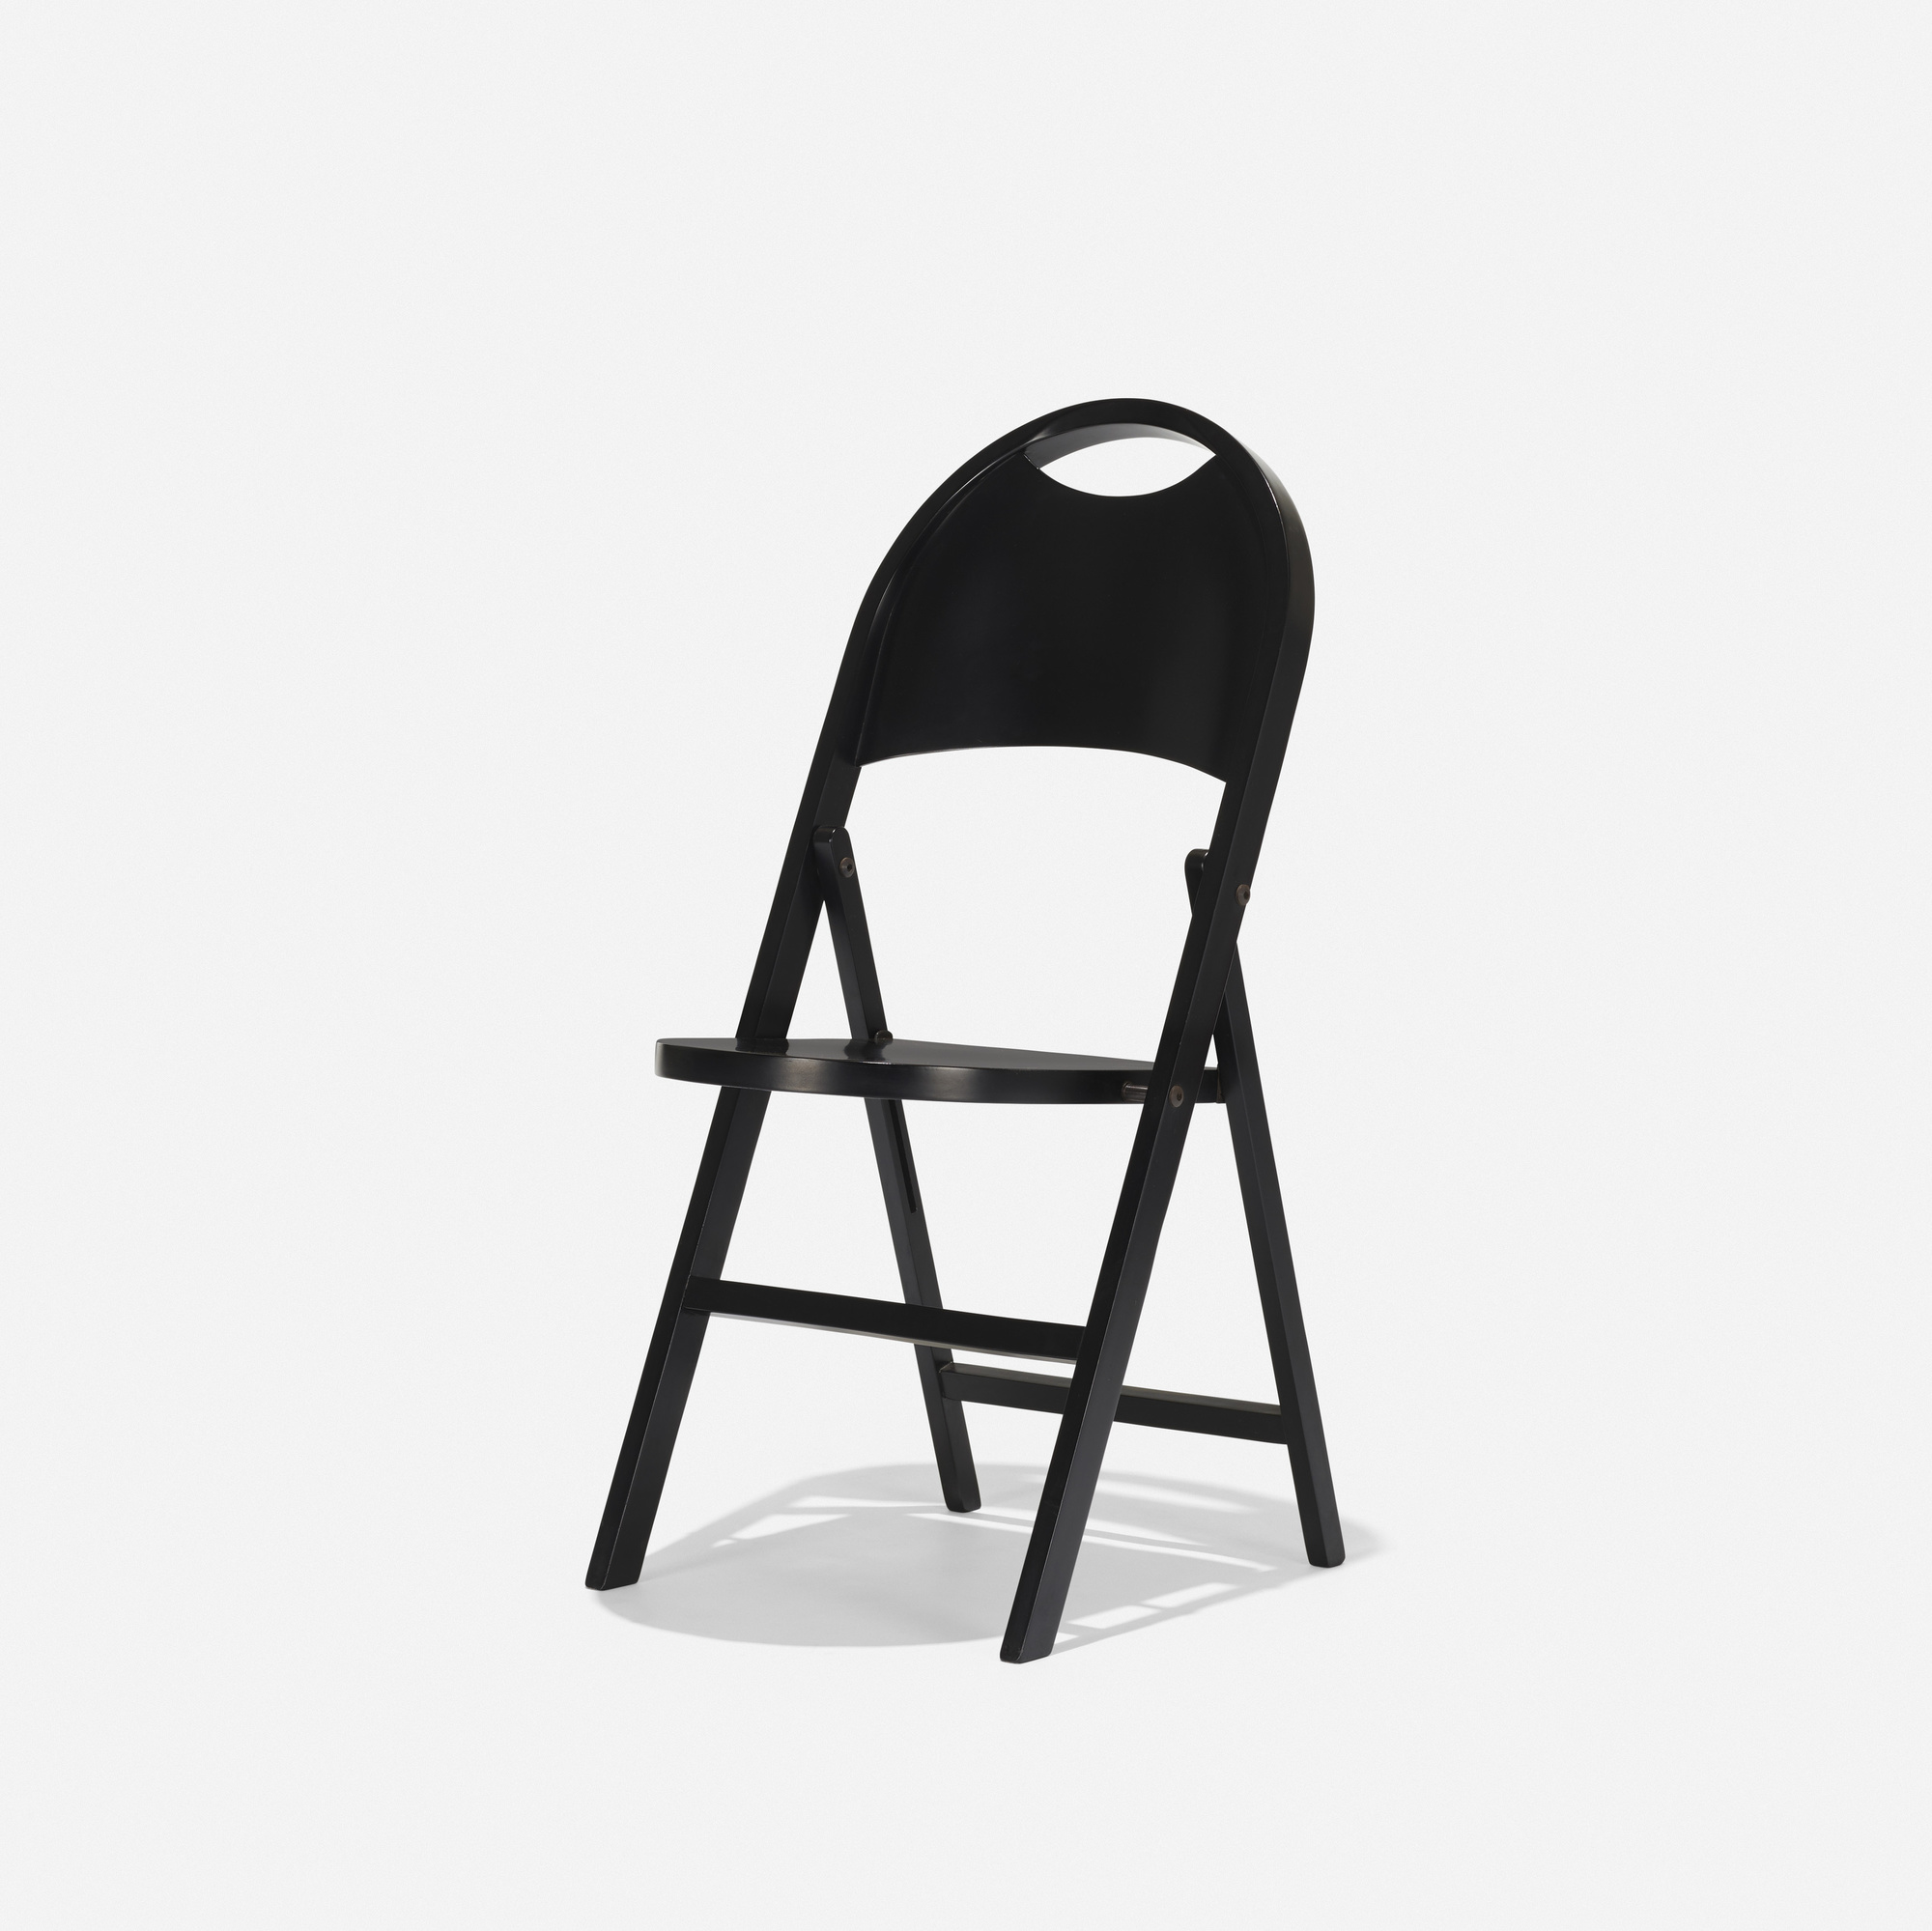 426: Achille and Pier Giacomo Castiglioni / Tric folding chair (1 of 3)